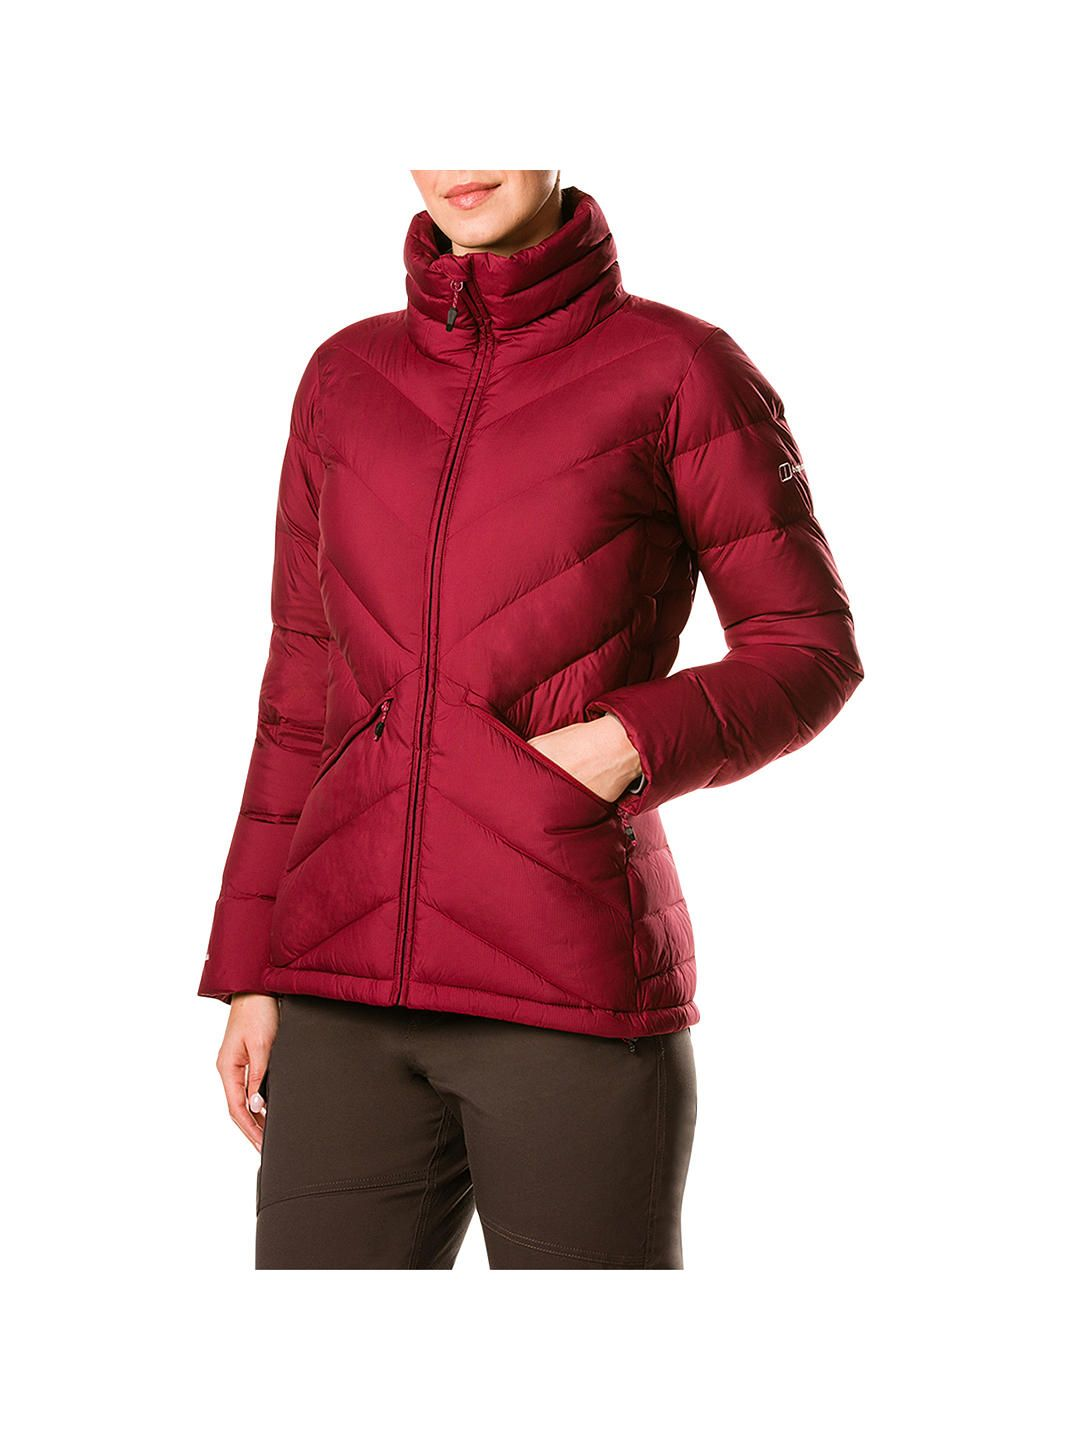 45ea46e7b Berghaus Easdale Insulated Women's Jacket, Beet Red. A smart warm ...